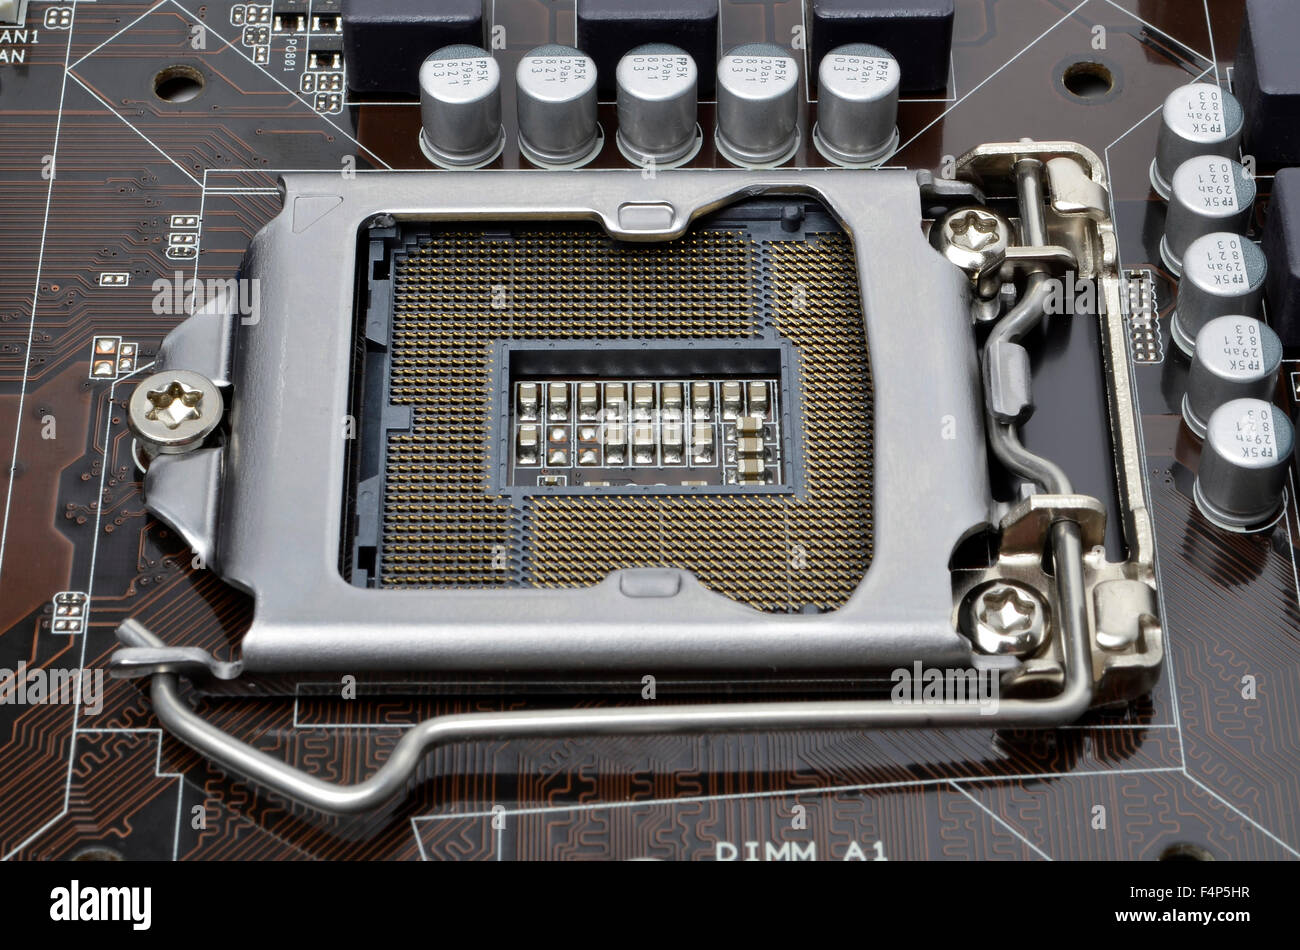 Intel LGA1155 processor socket on an ASUS motherboard. - Stock Image